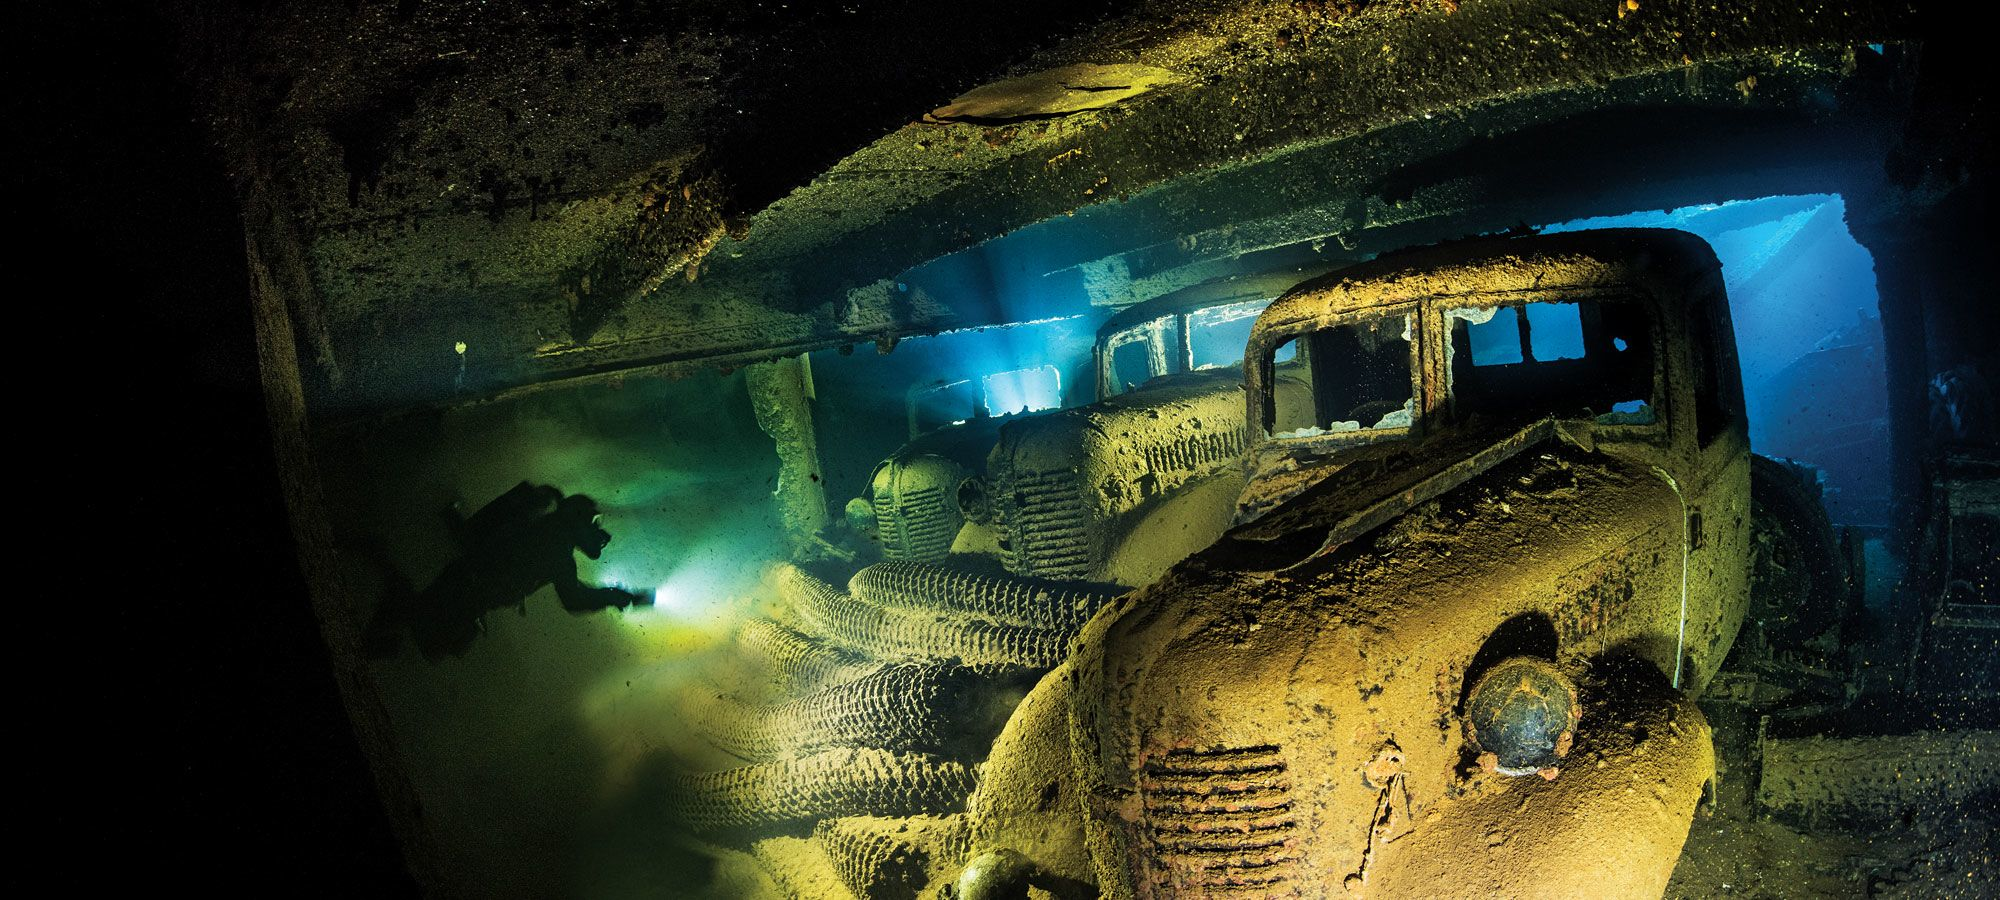 Can truk lagoon be saved scuba diving can truk lagoon be saved altavistaventures Gallery